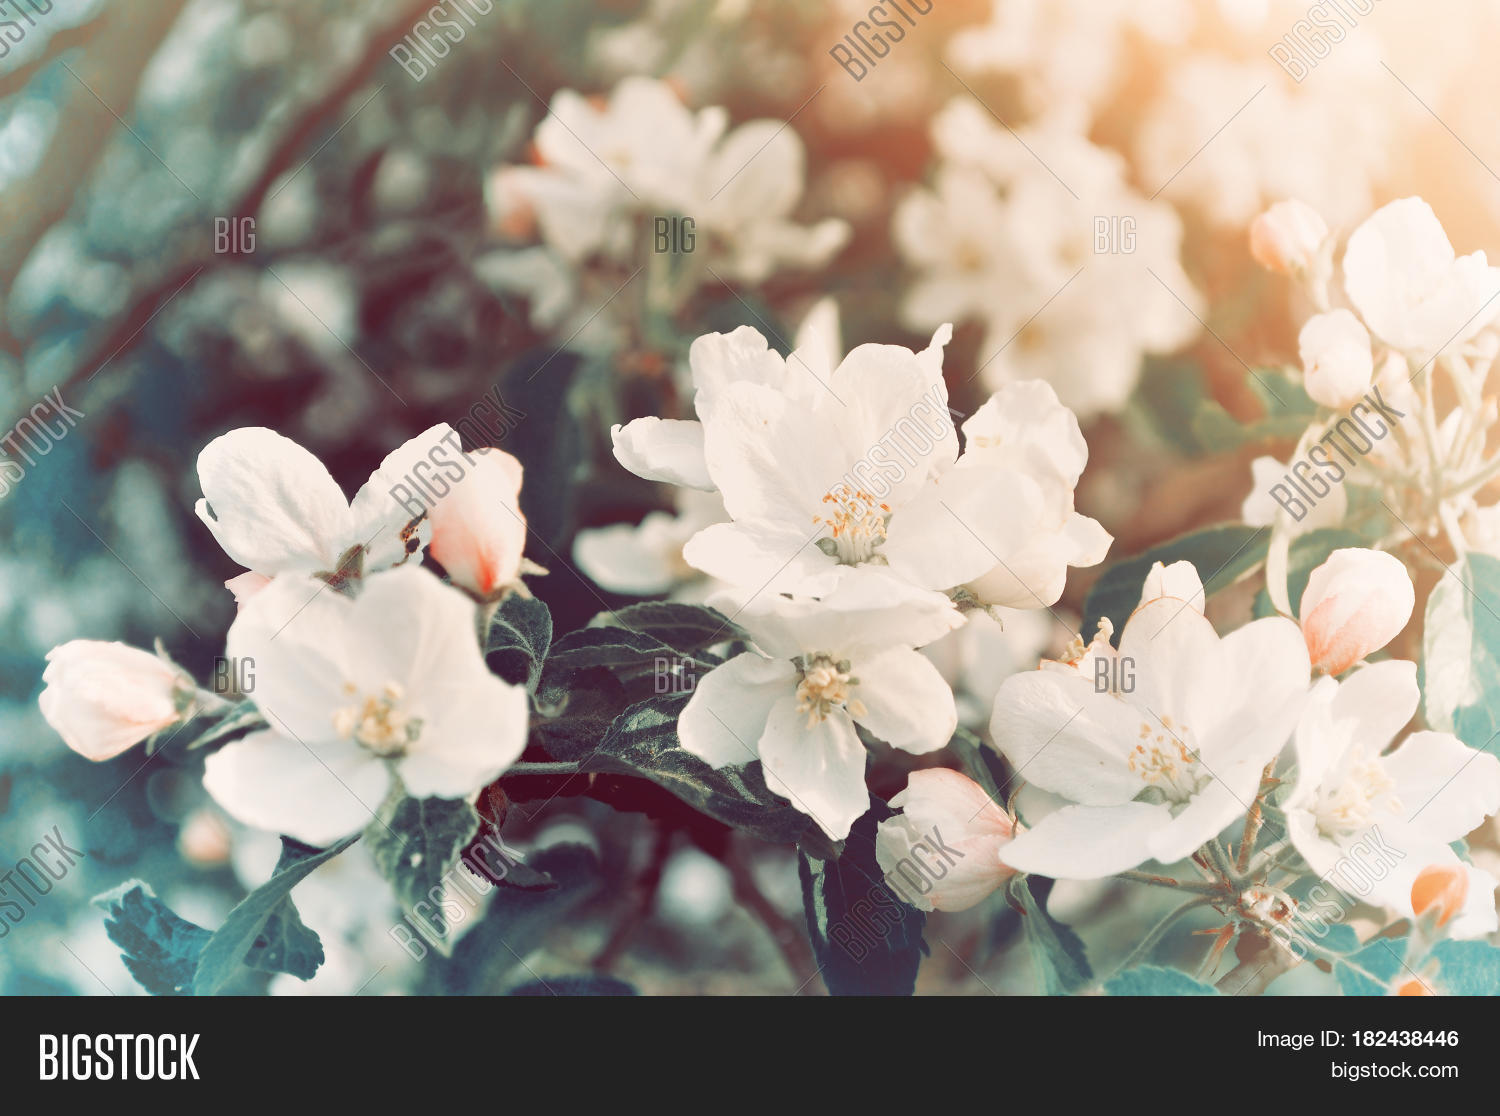 Spring Flowers Image Photo Free Trial Bigstock